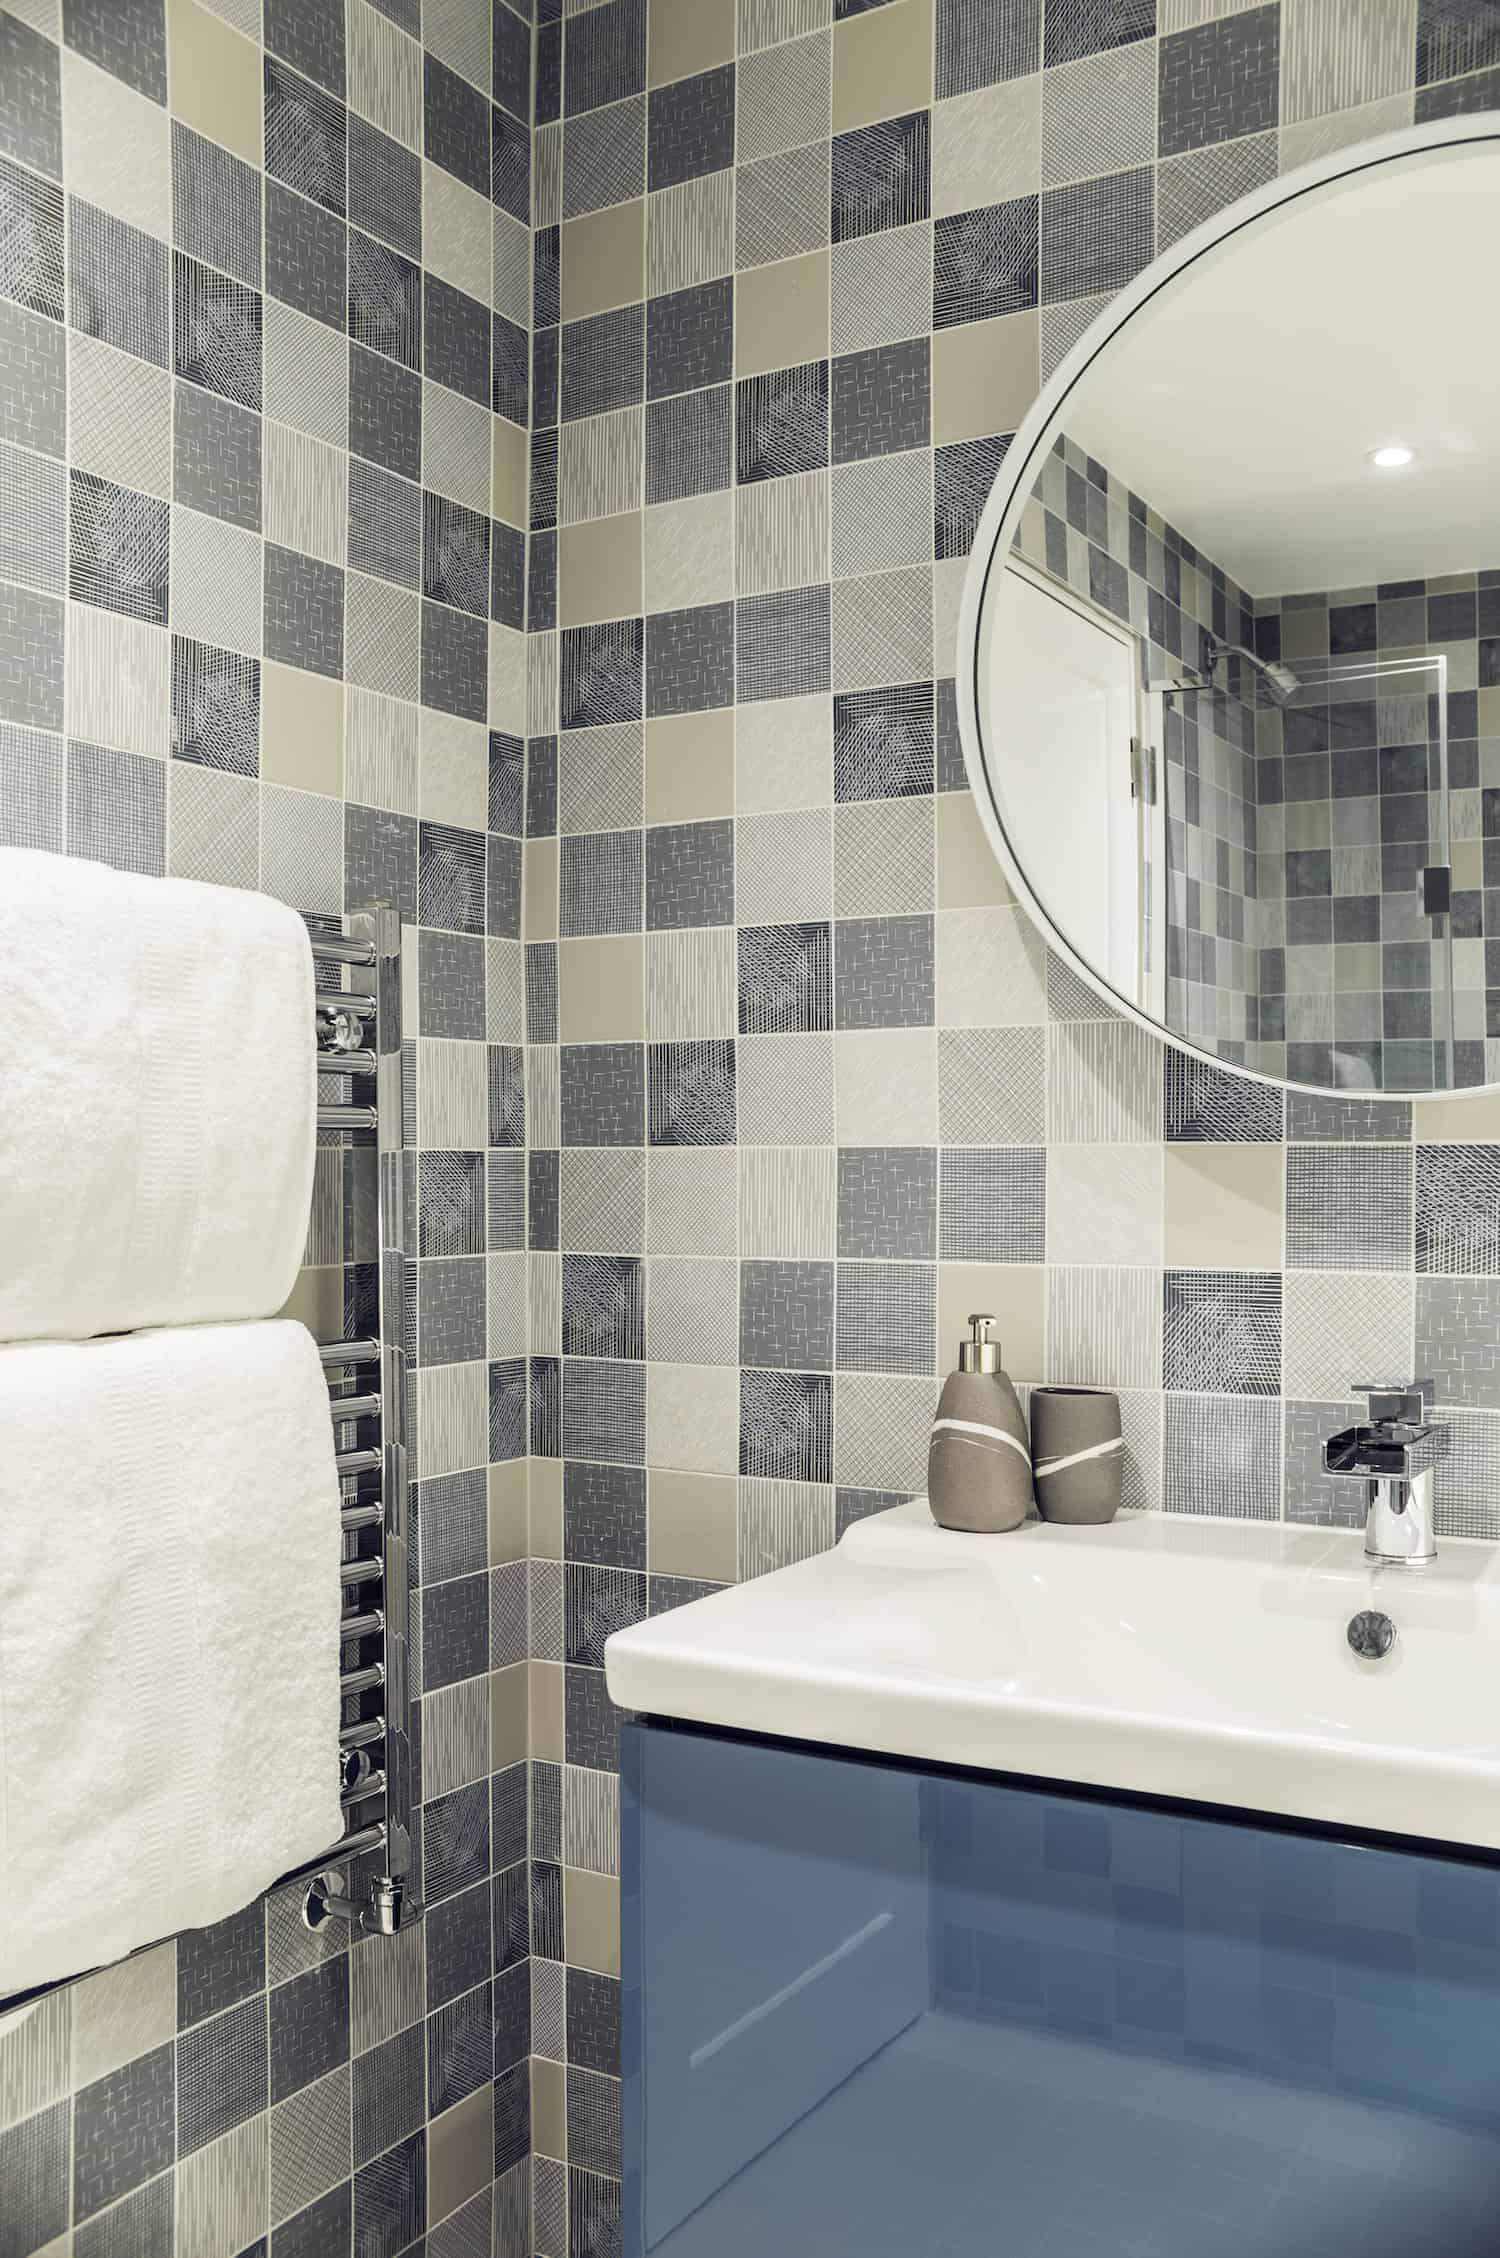 "The kids bathroom is, in my view, thoughtfully designed for both kids and for guests. It's visually interesting with a multi-checked tile but not done so in an obnoxious ""kid"" style. The vanity, sink and mirror offer a touch of retro style as well."